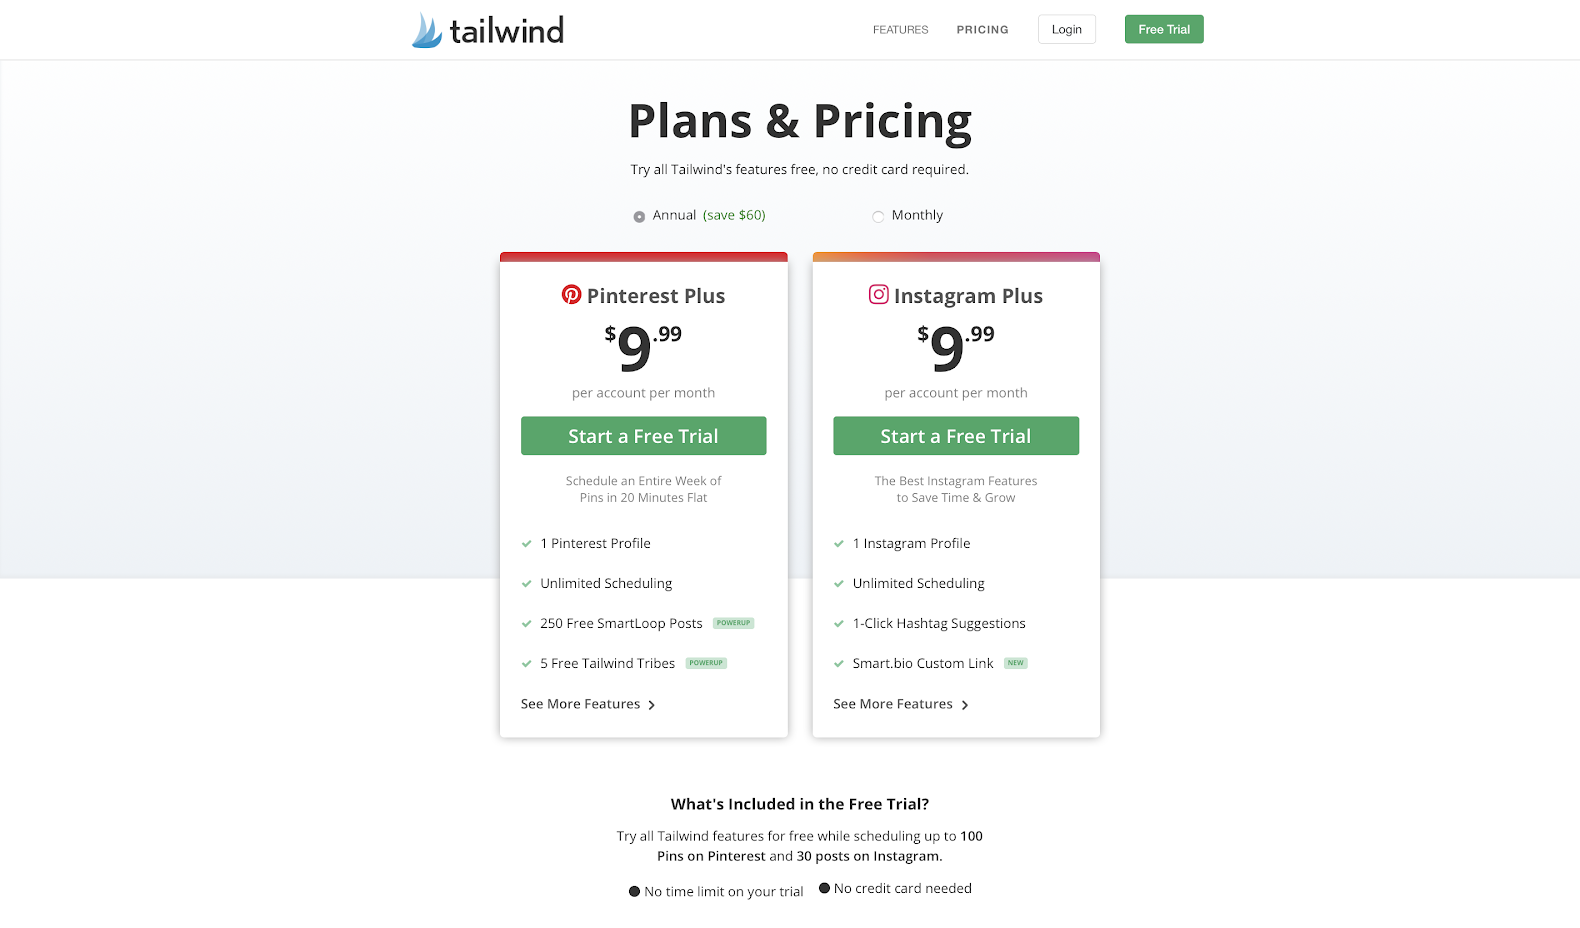 10 Of The Best Social Media Management Tools To Boost Your Campaign This 2020 tailwind pricing